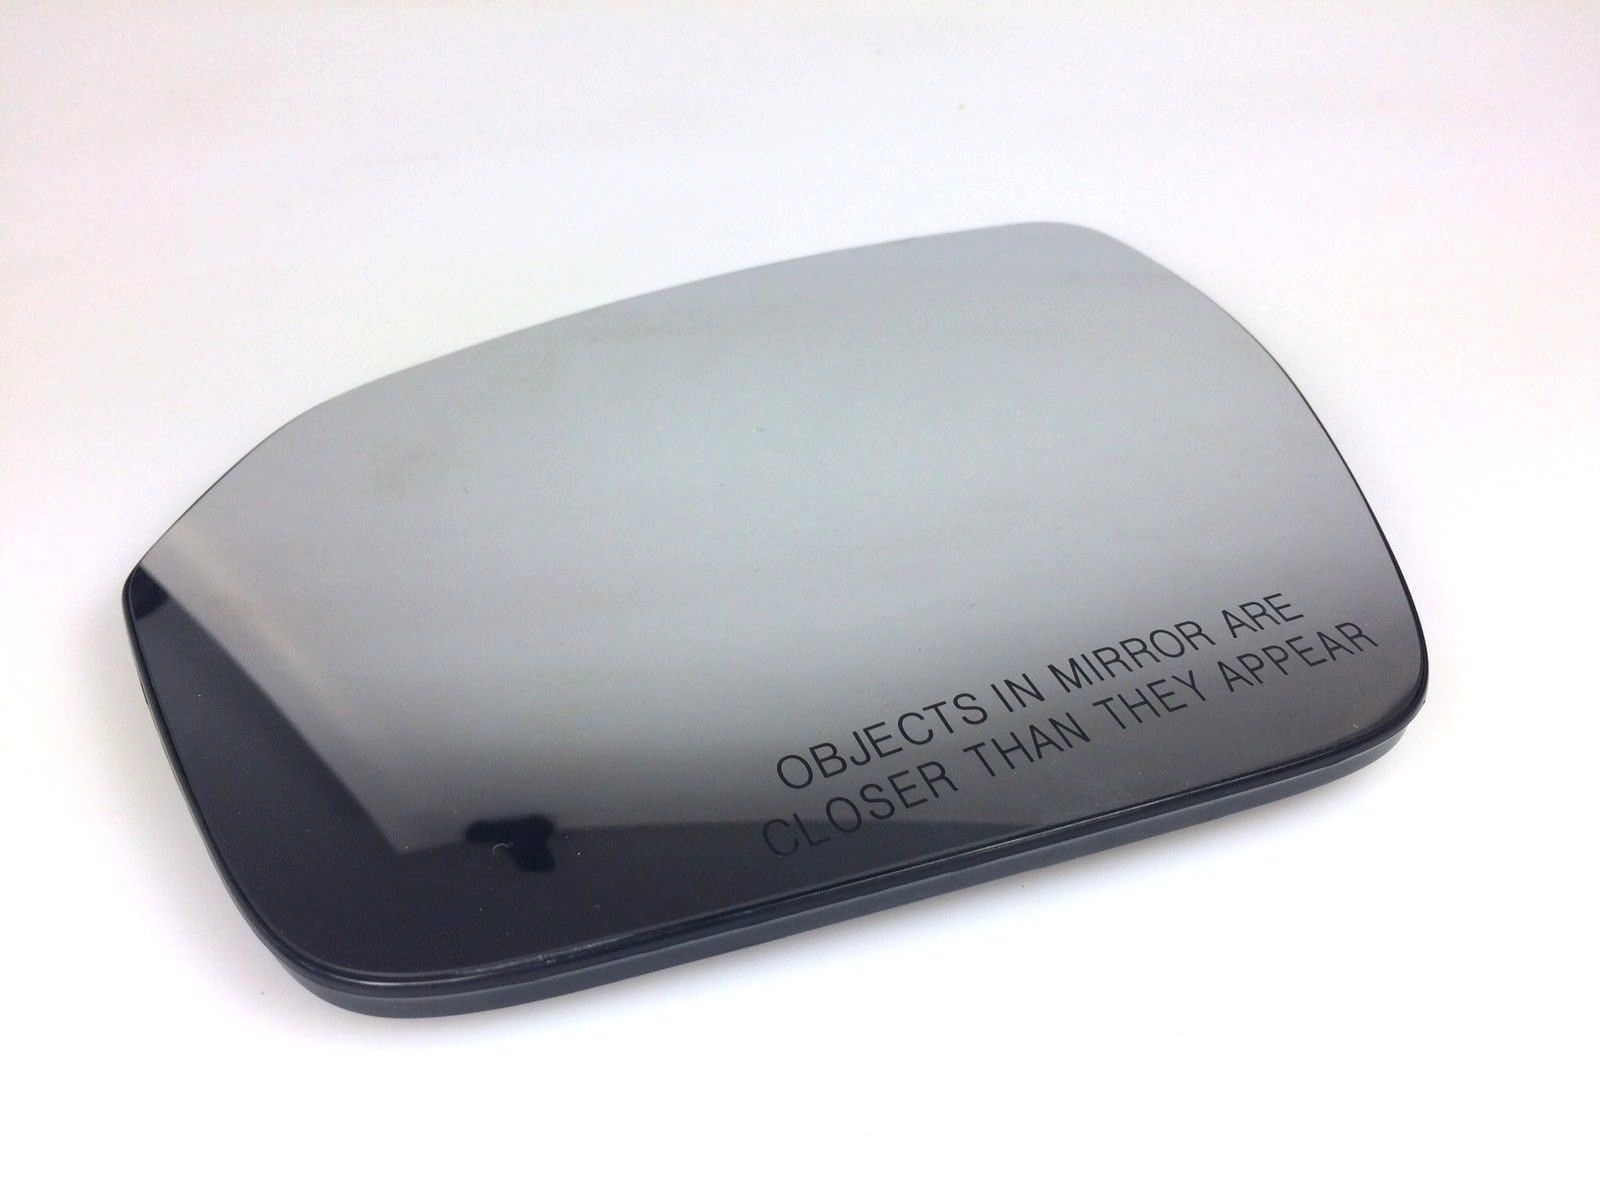 RANGE ROVER EVOQUE DOOR MIRROR GLASS LH WITH SCRIPT – LR025215.